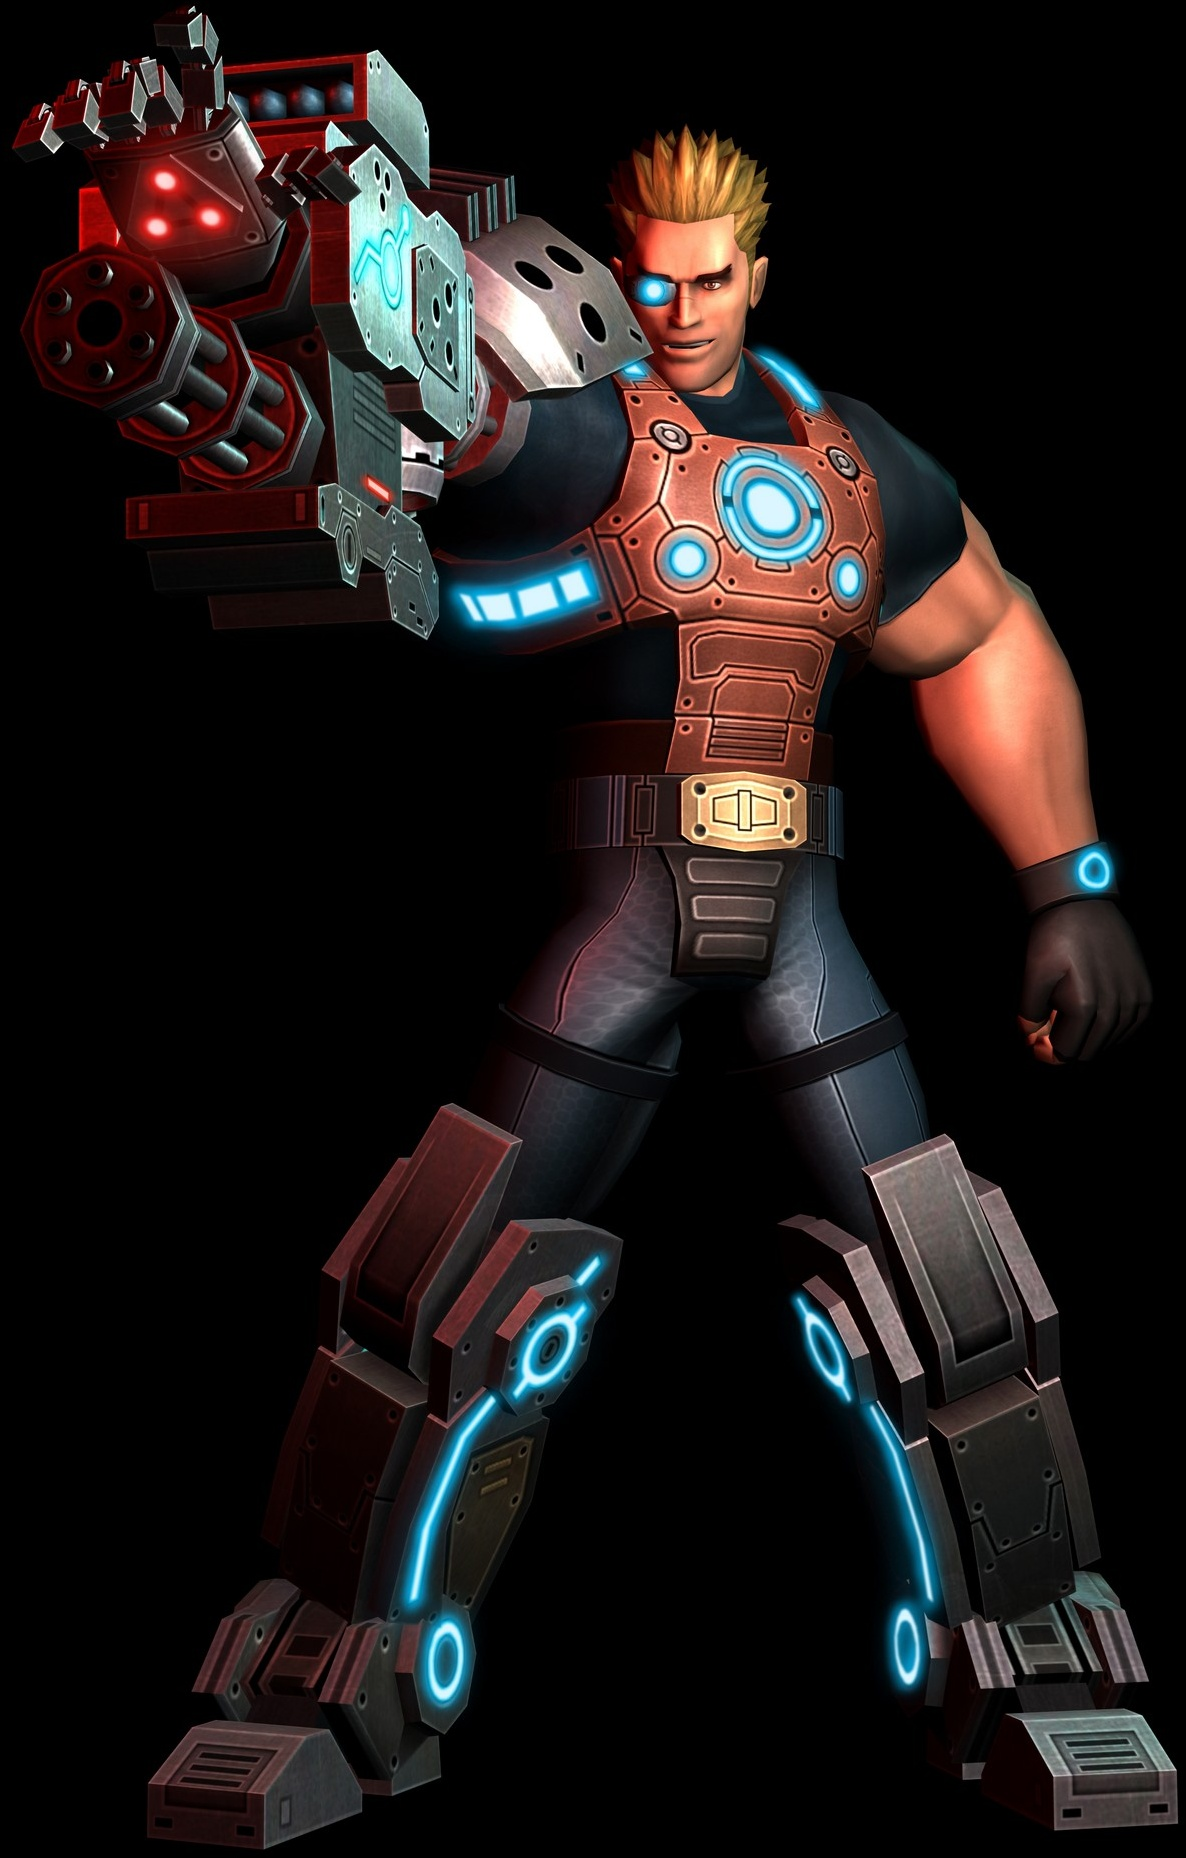 Mega Man may be Capcom's best-known cybernetic creation, but he'll need to make room for Stinger.